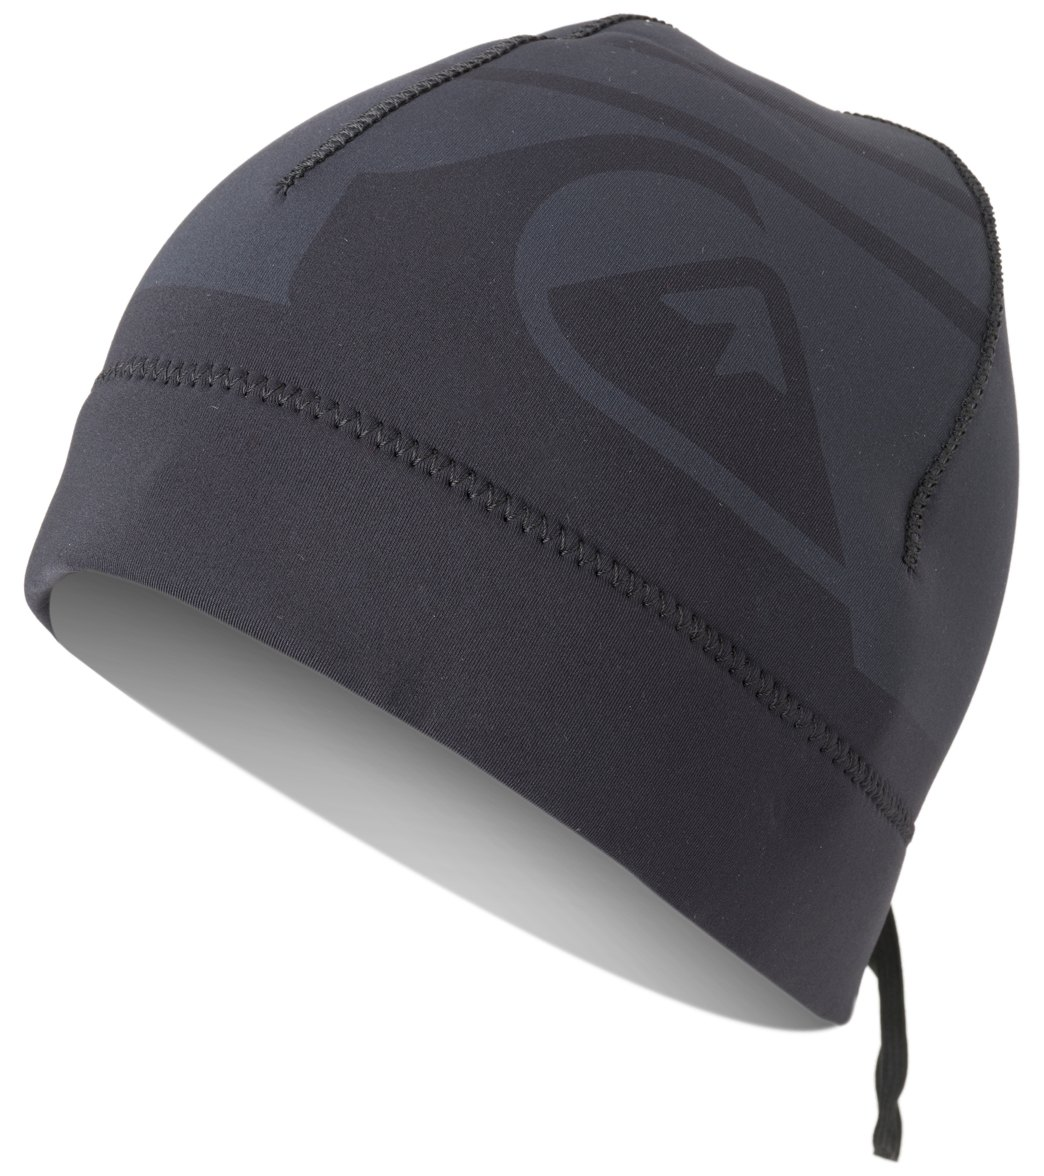 Quiksilver Men s 2mm Syncro Wetsuit Neoprene Beanie at SwimOutlet.com ff8f3560fab